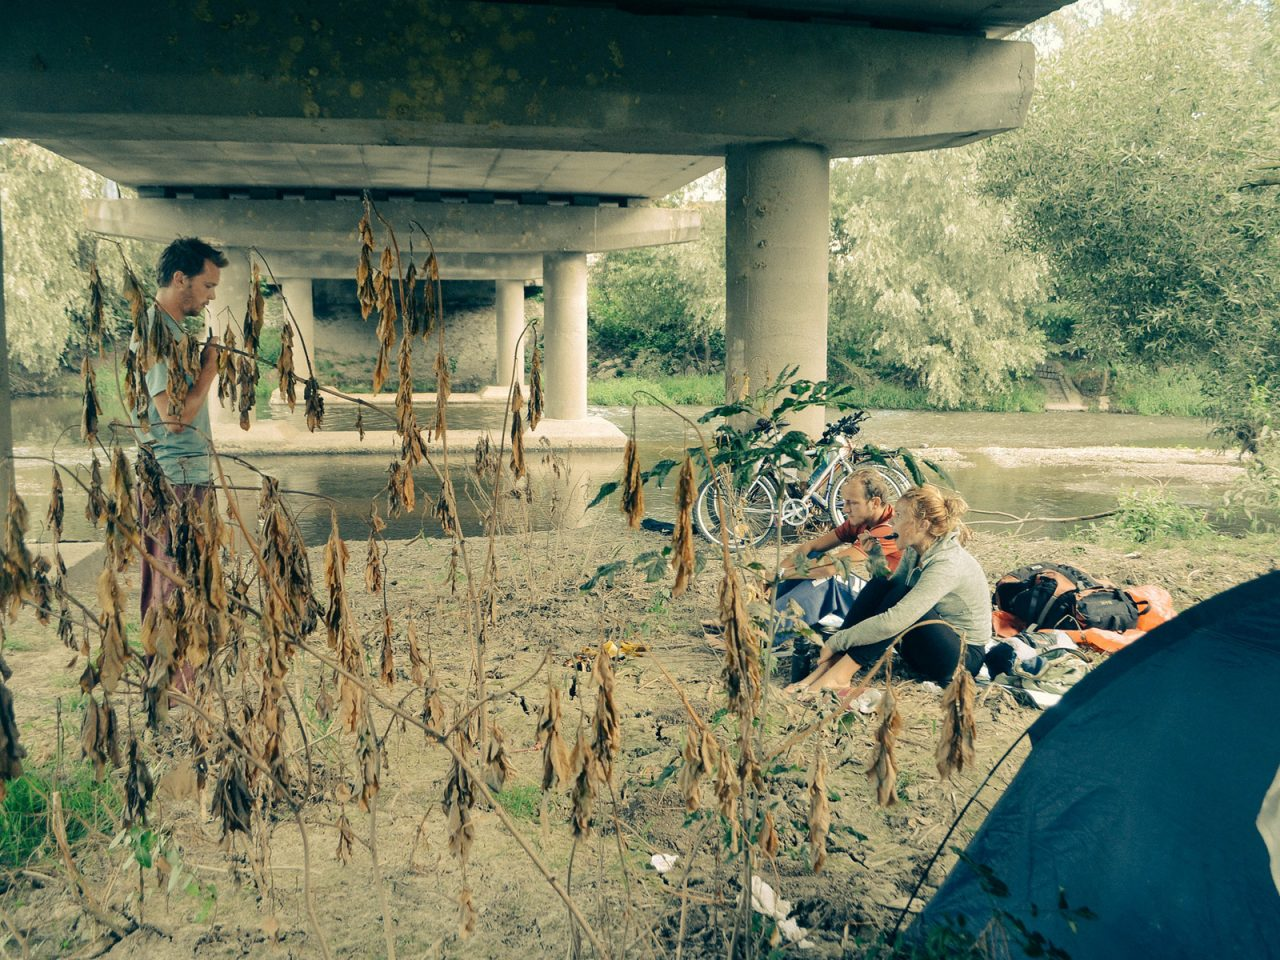 Under a Bridge, Czech Republic - Free Camping